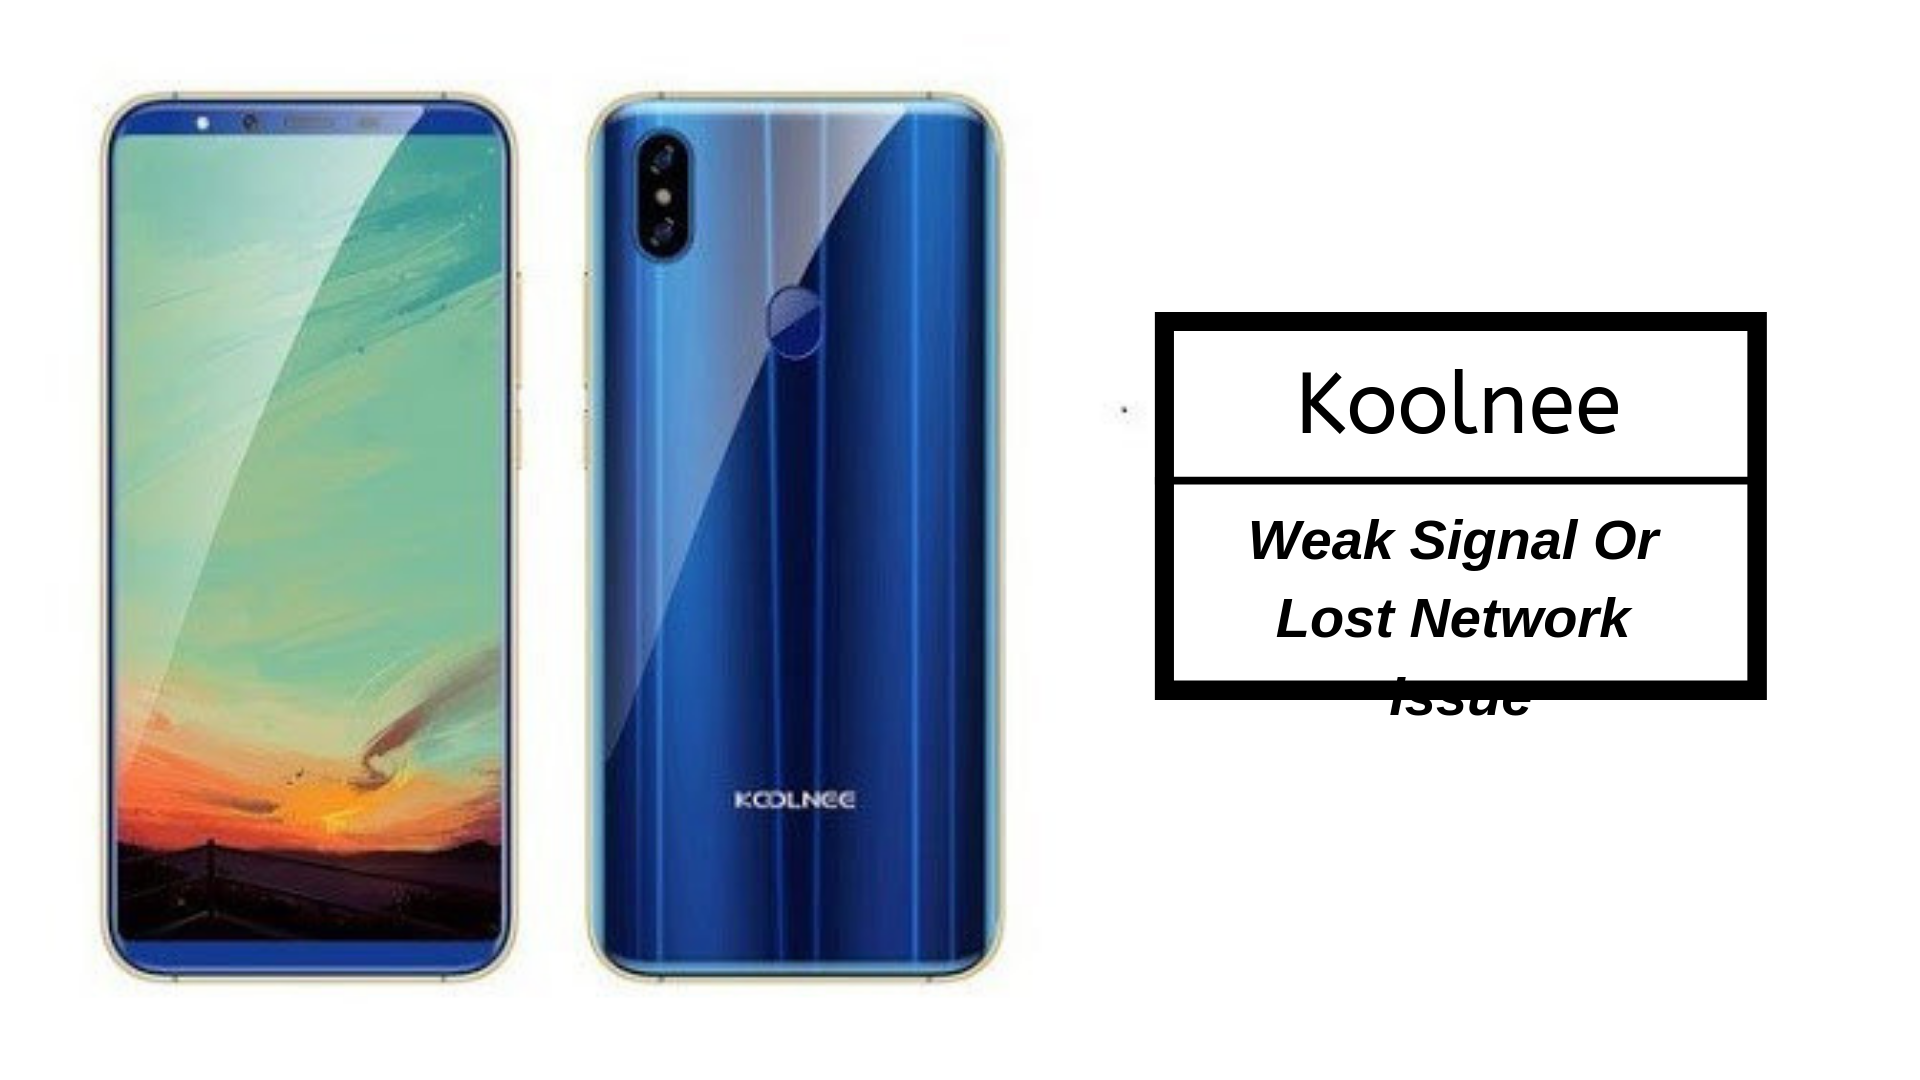 Guide To Fix Koolnee Weak Signal Or Lost Network Issue